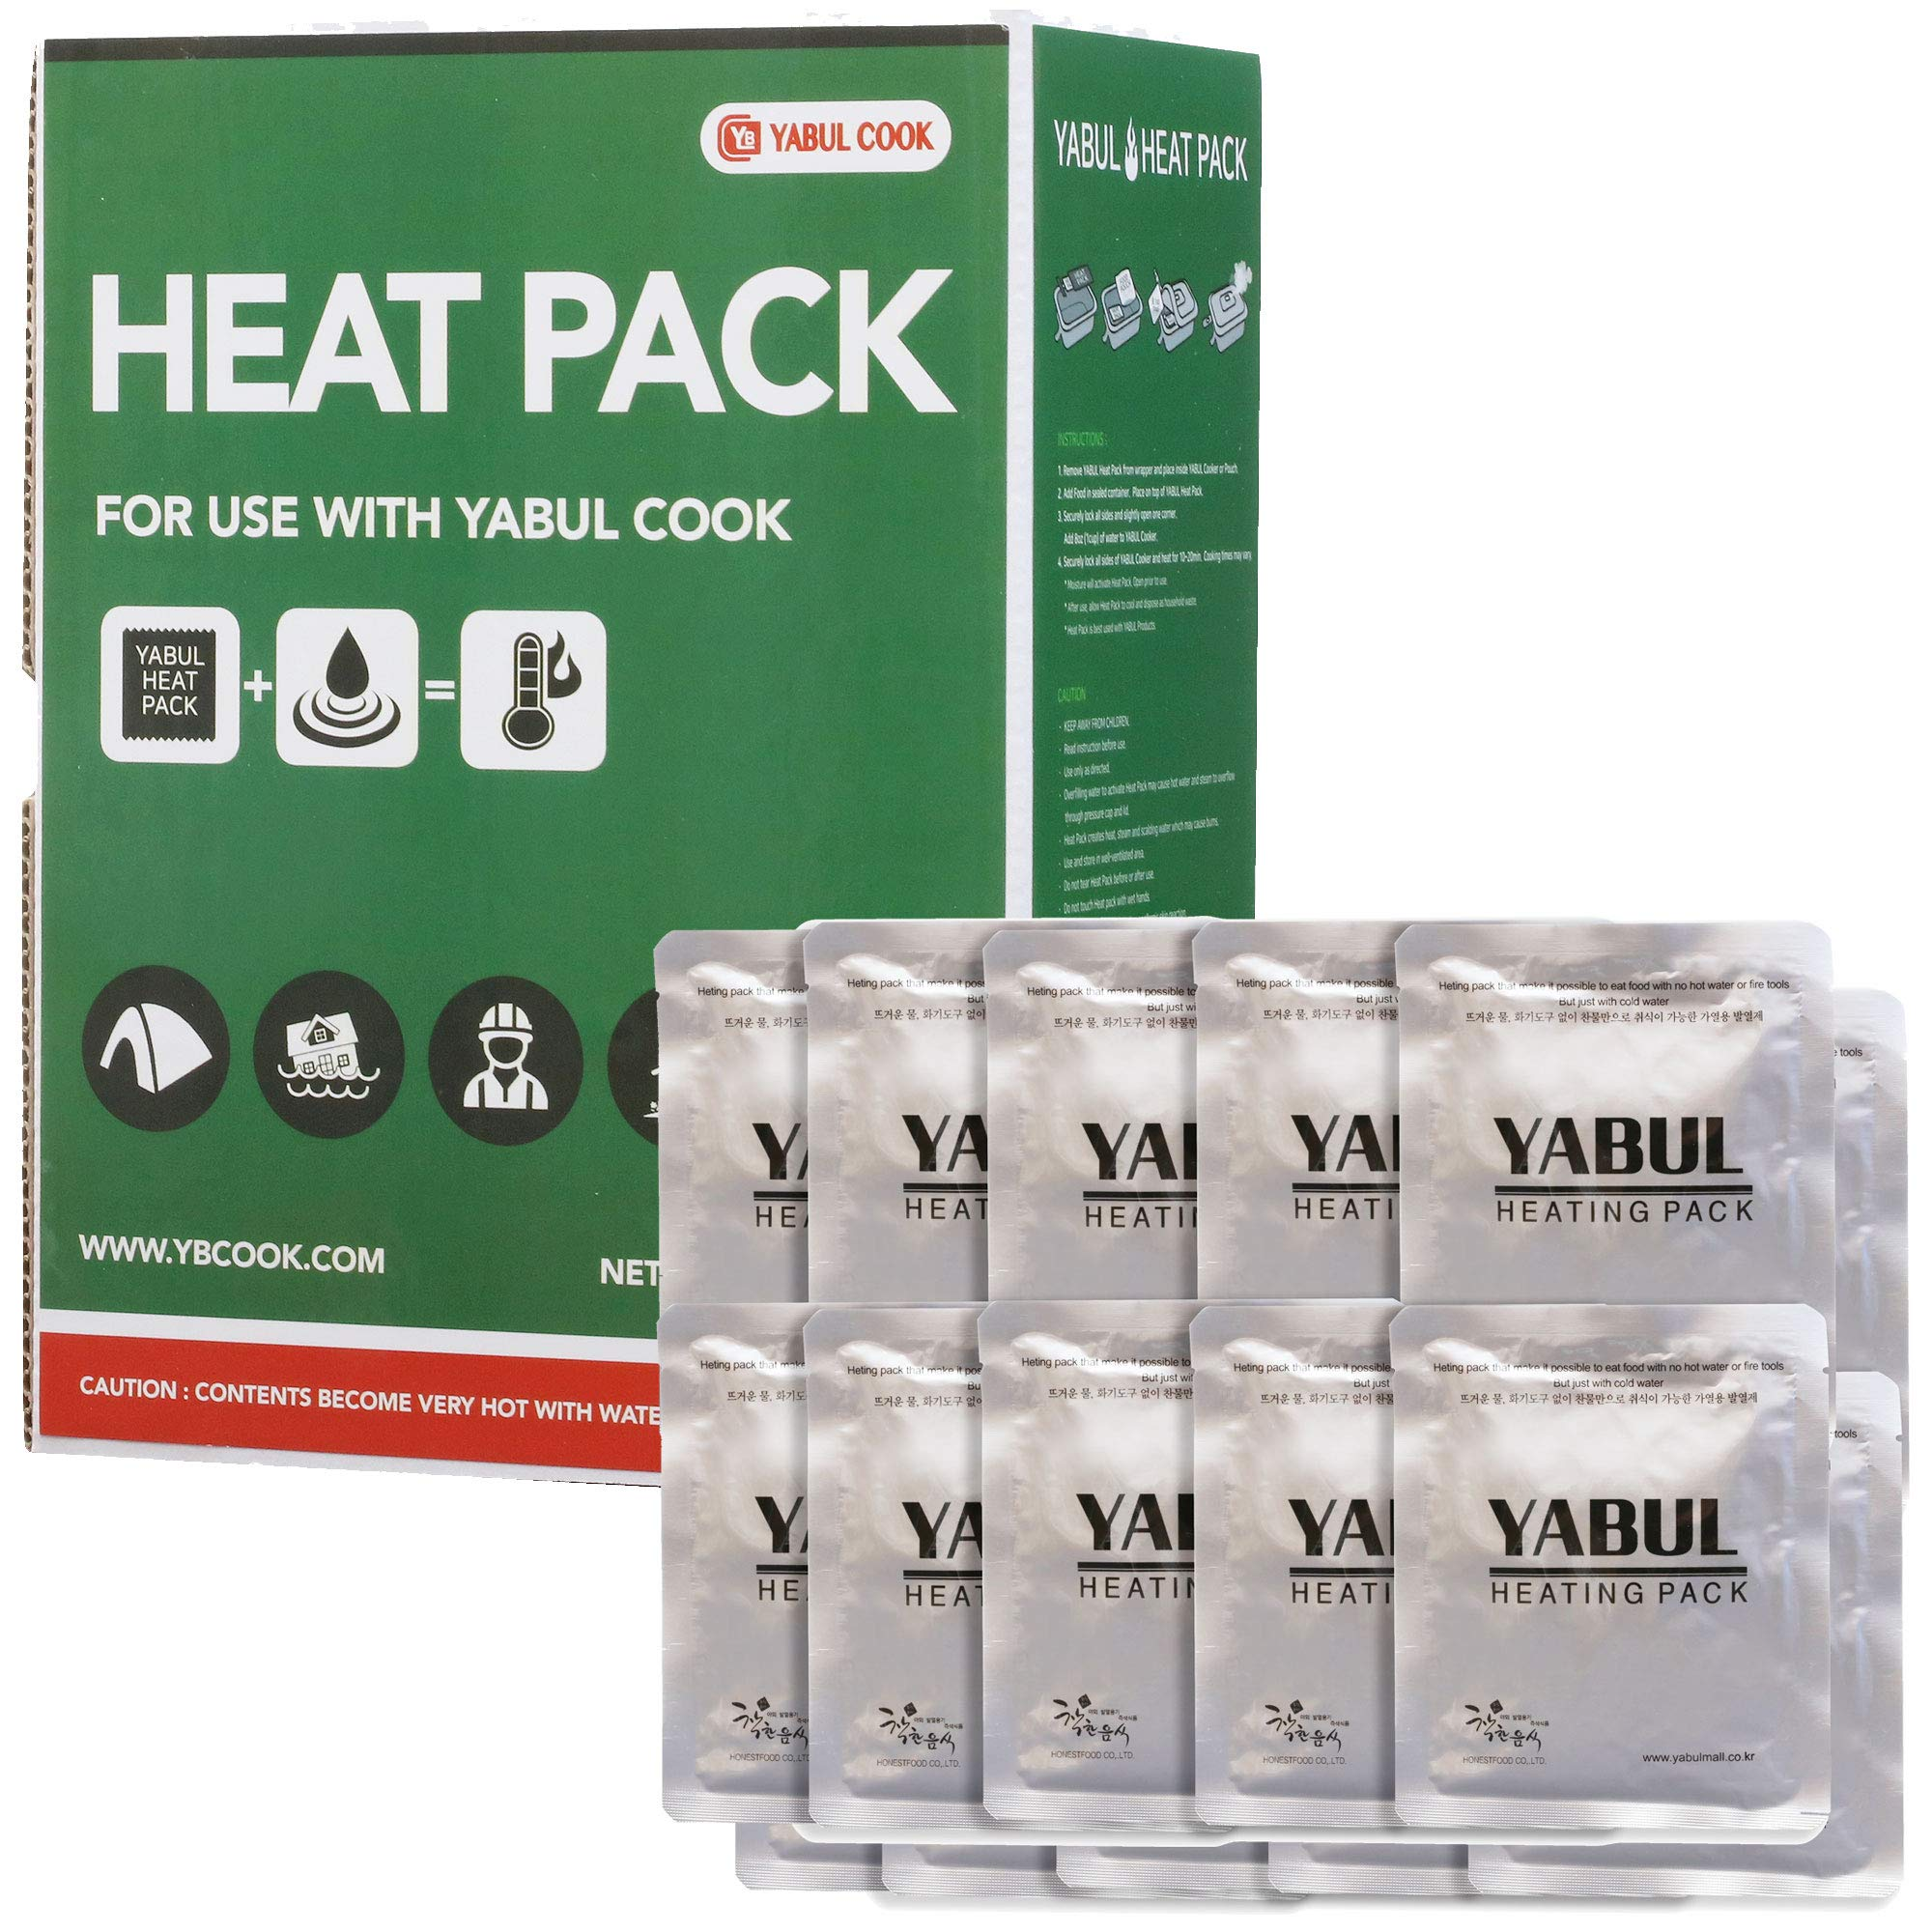 Yabul Large 80g Flameless Heater Heating Pack Set for Yabul Cooker - Safe Fuel to Heat Warm MRE Rations, Camping Foods Fast Anytime without Fire (Pack of 20) by Yabul